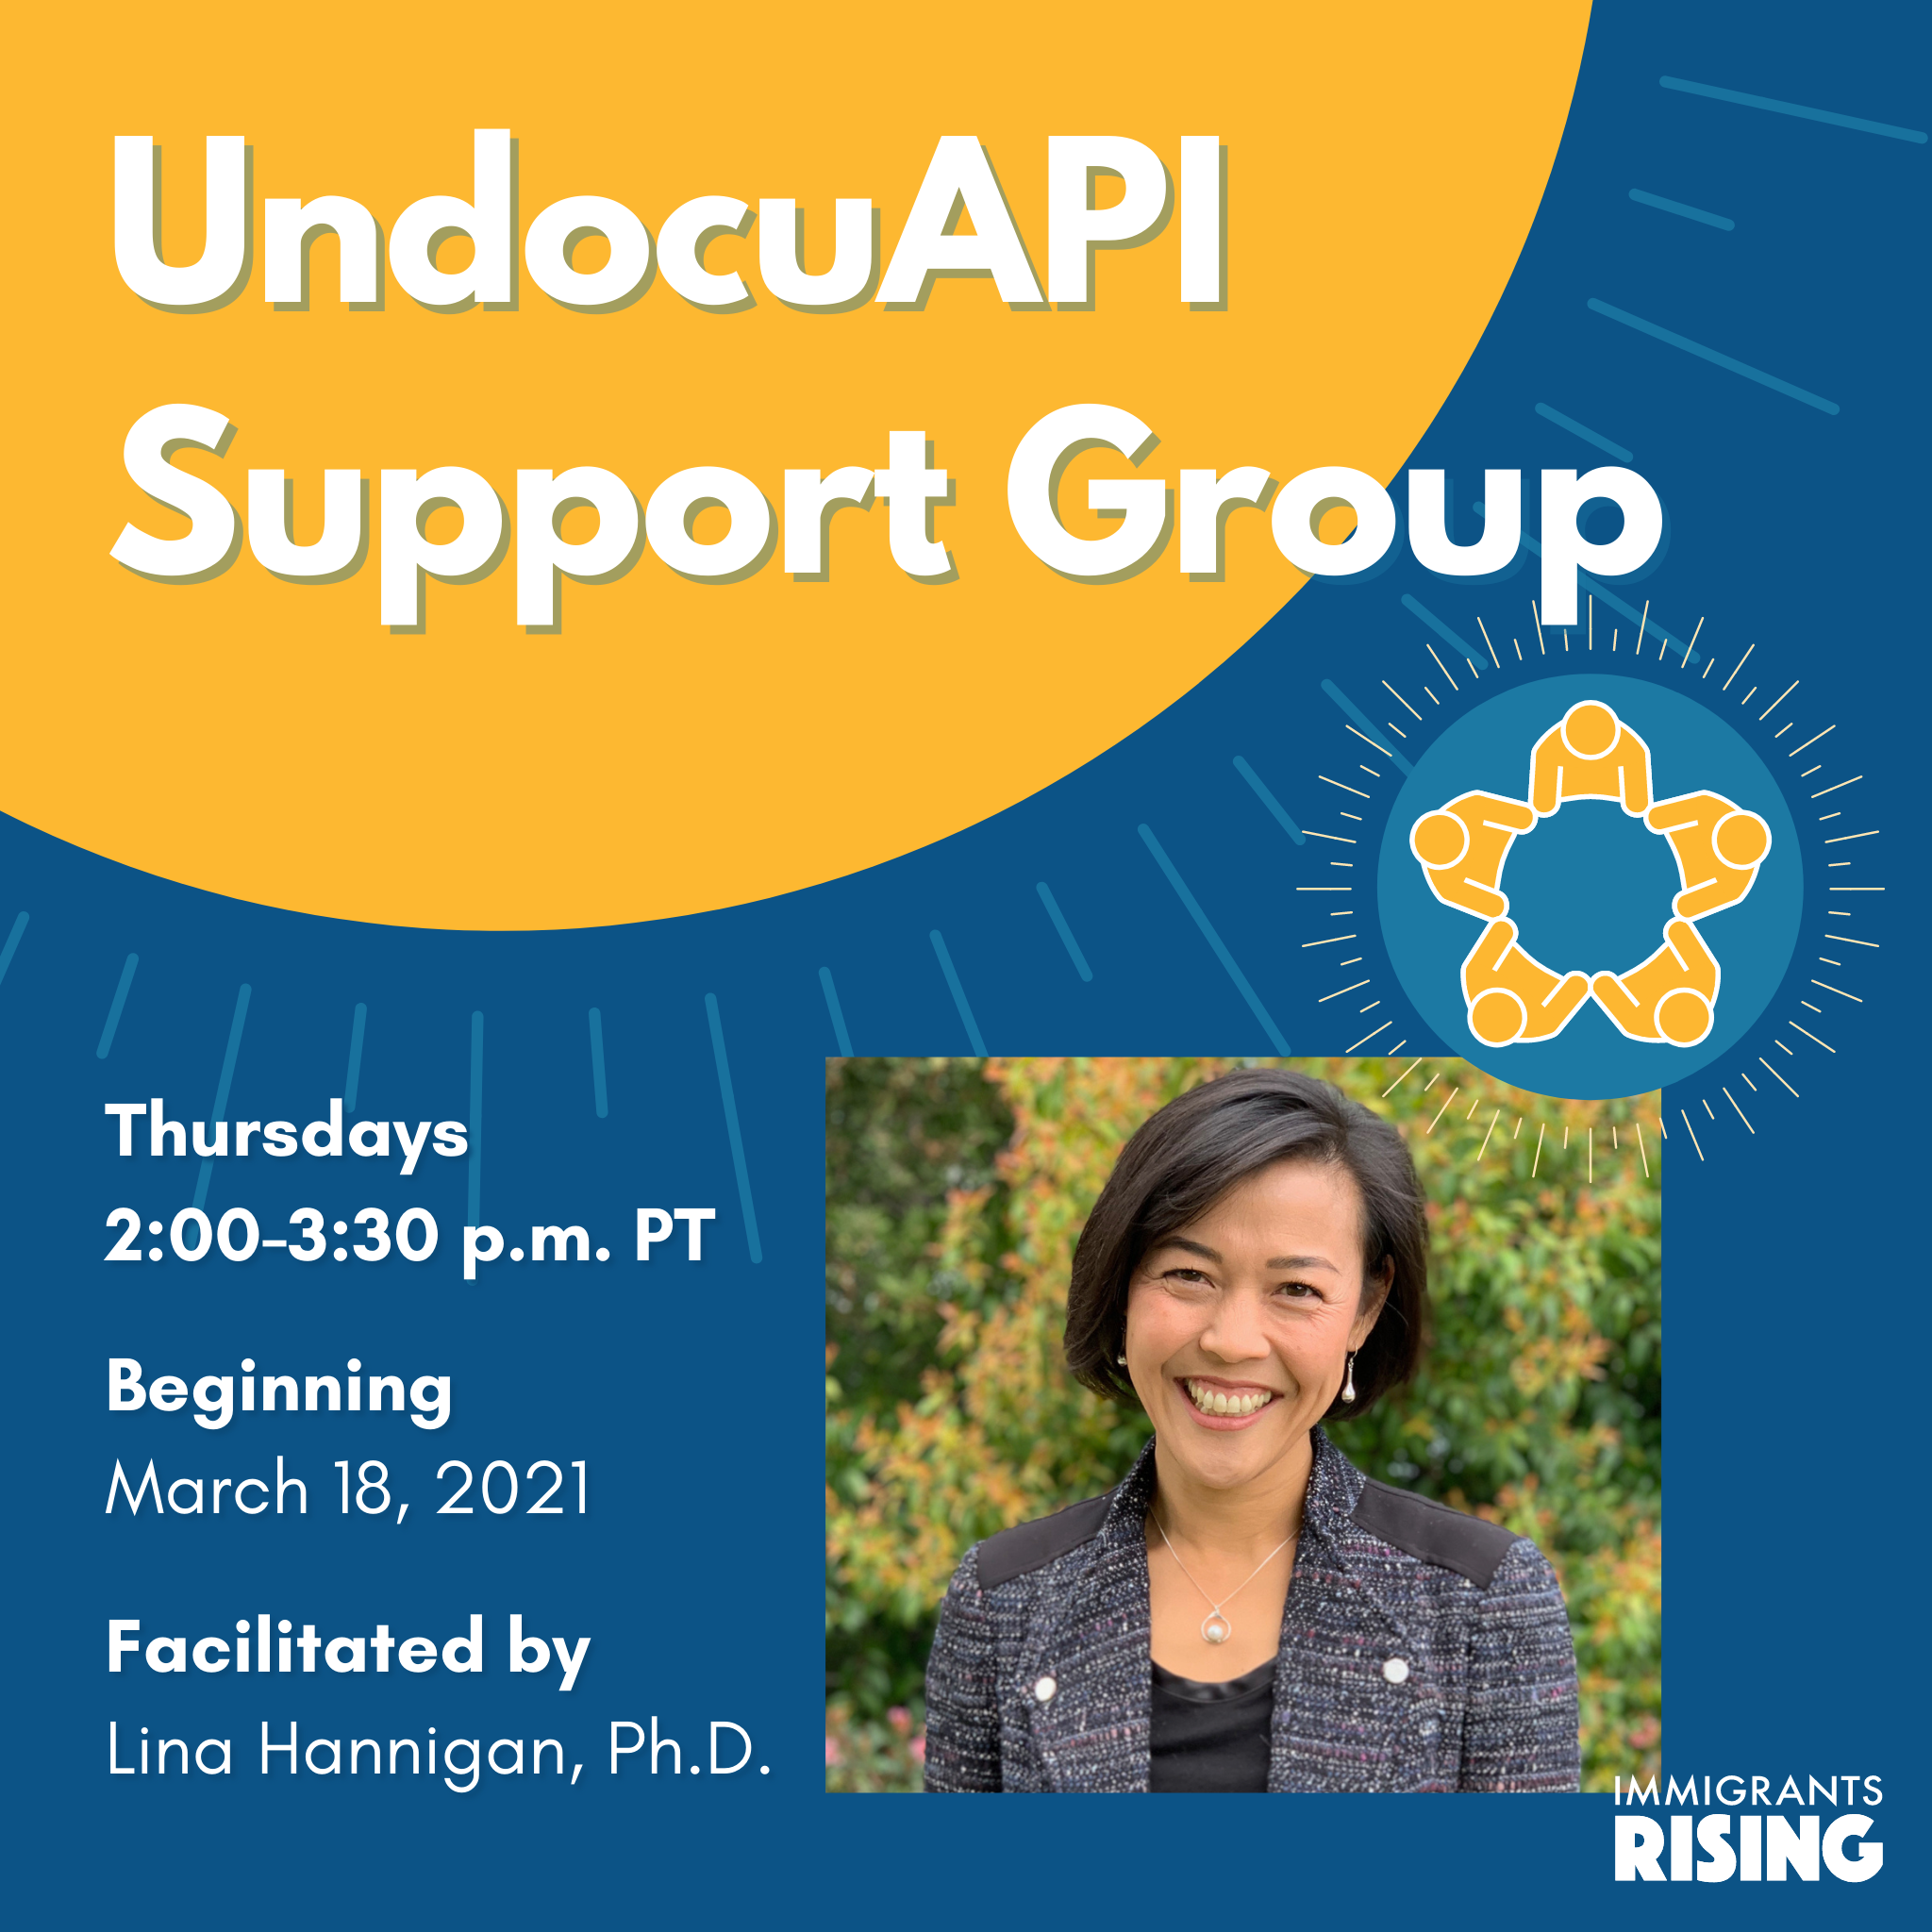 Wellness Support Group: UndocuAPI Support Group